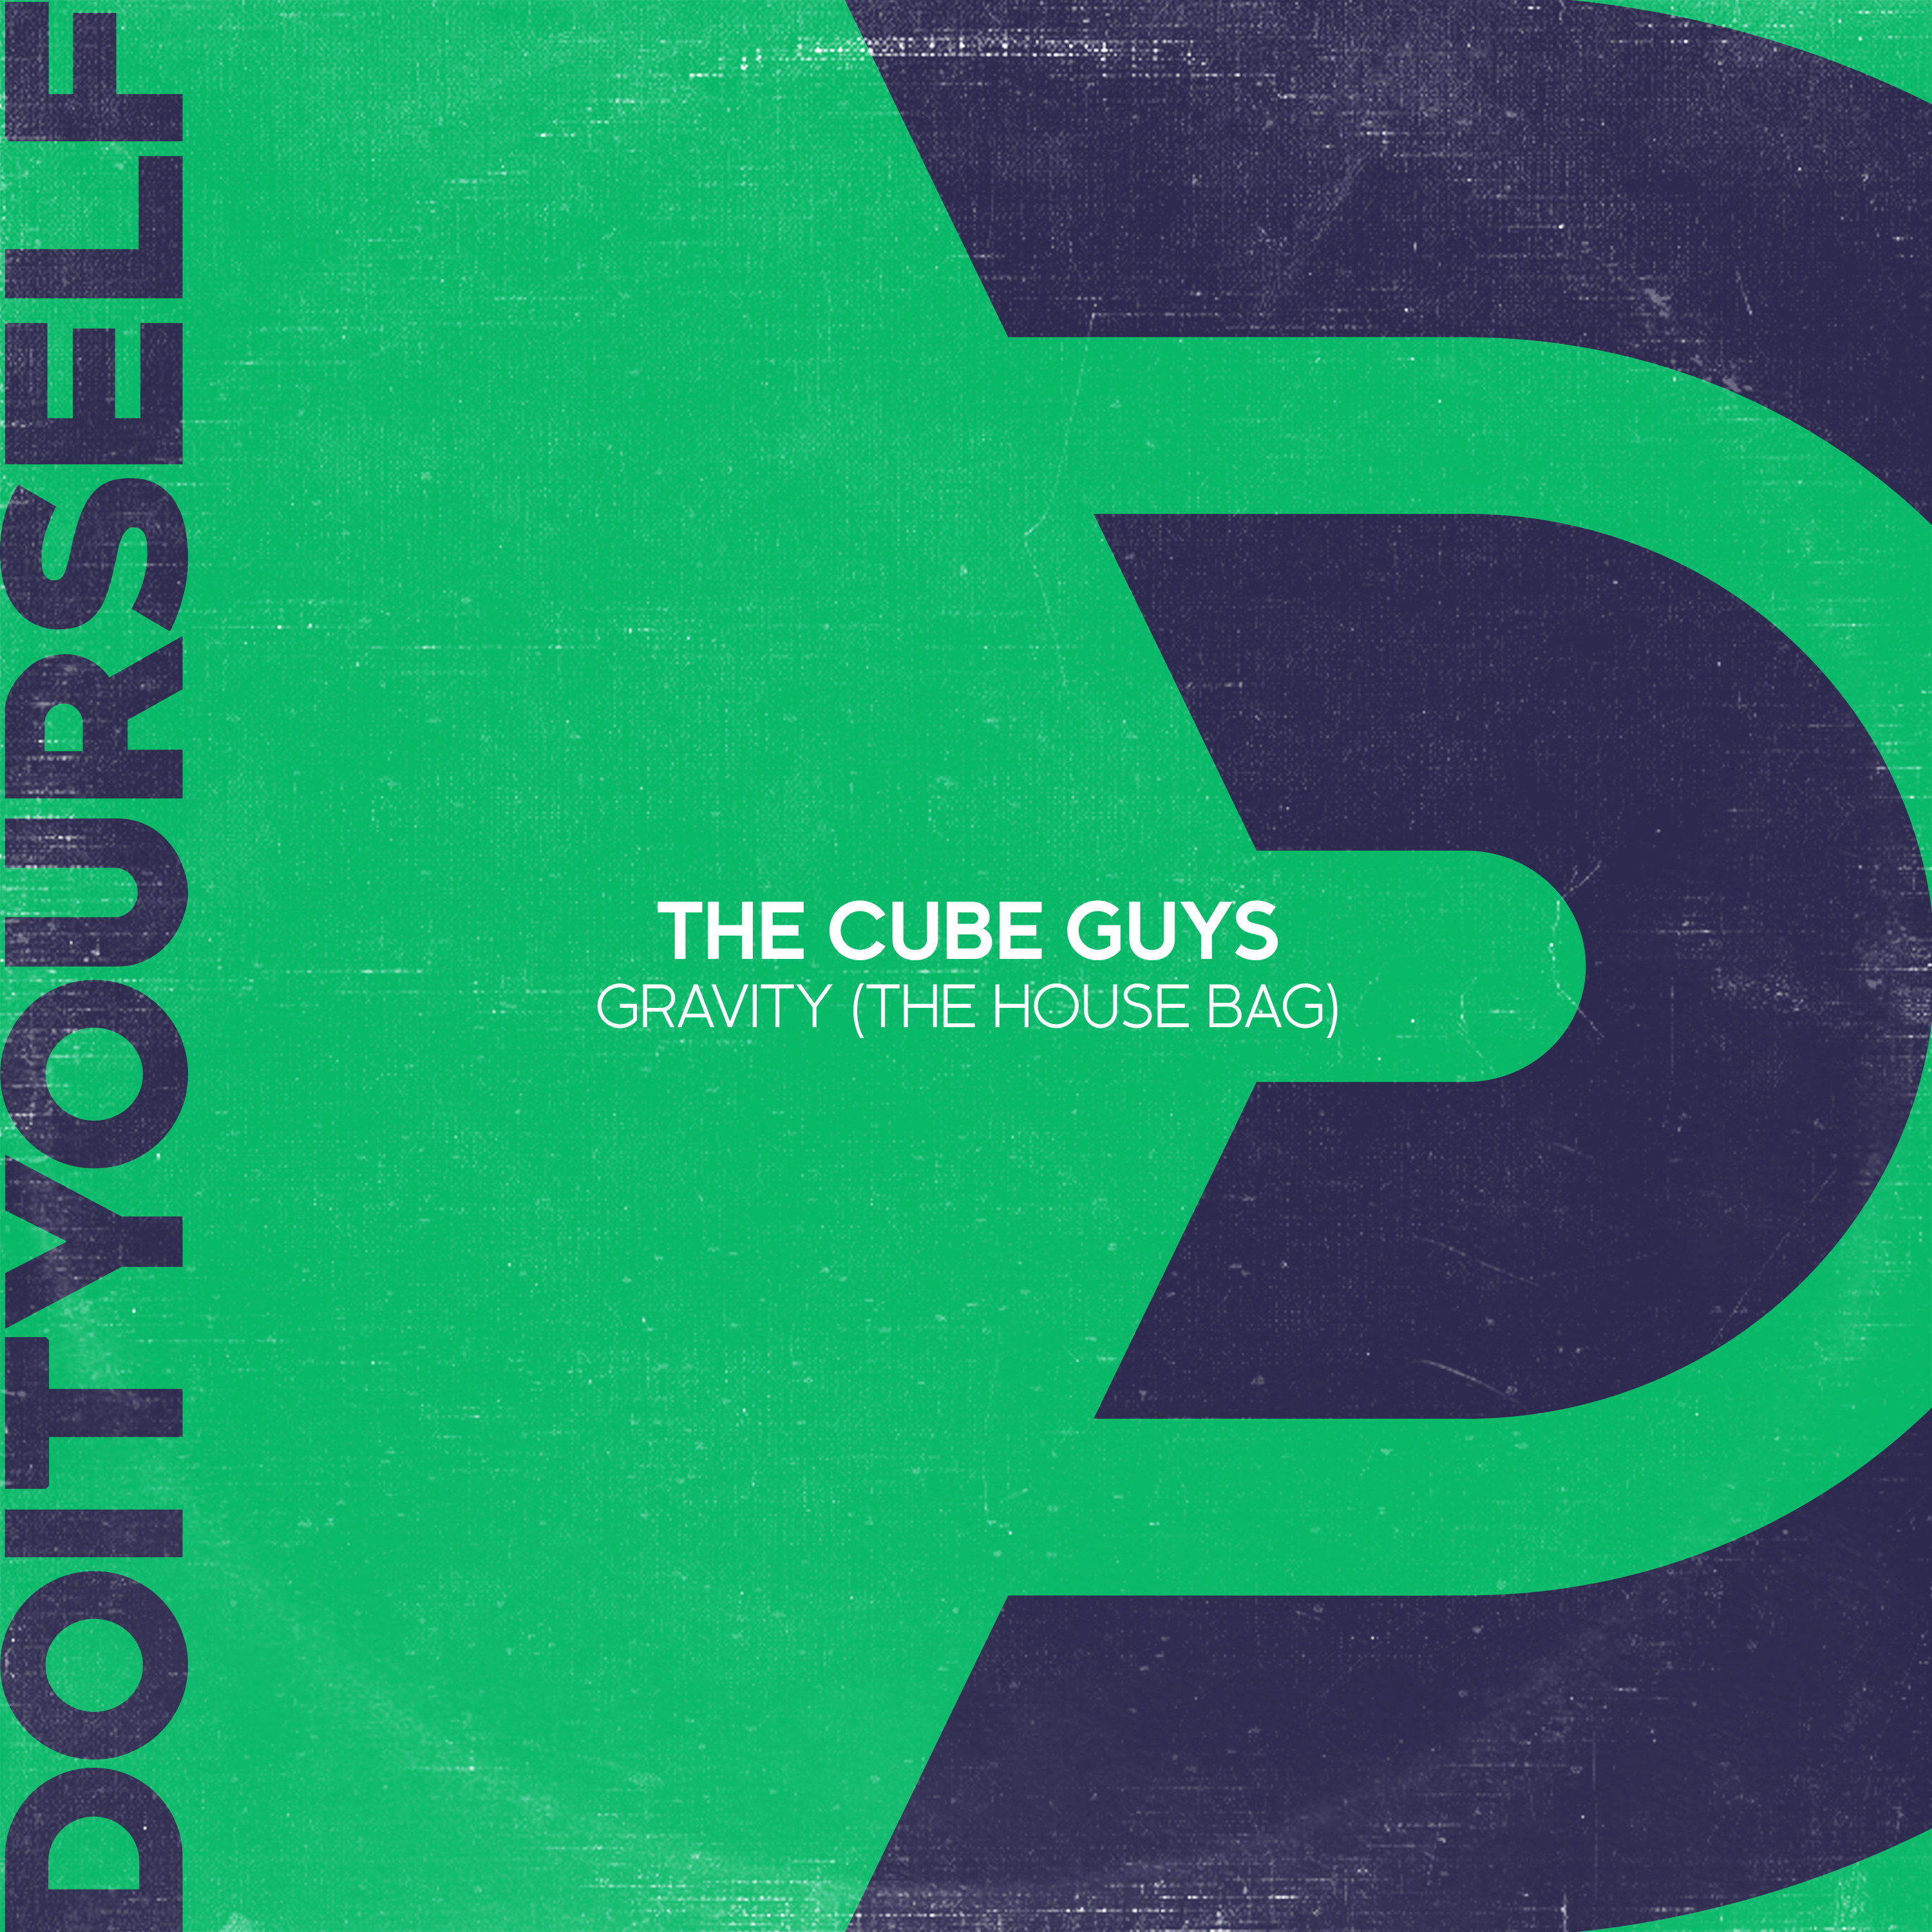 THE CUBE GUYS - Gravity (The House Bag)